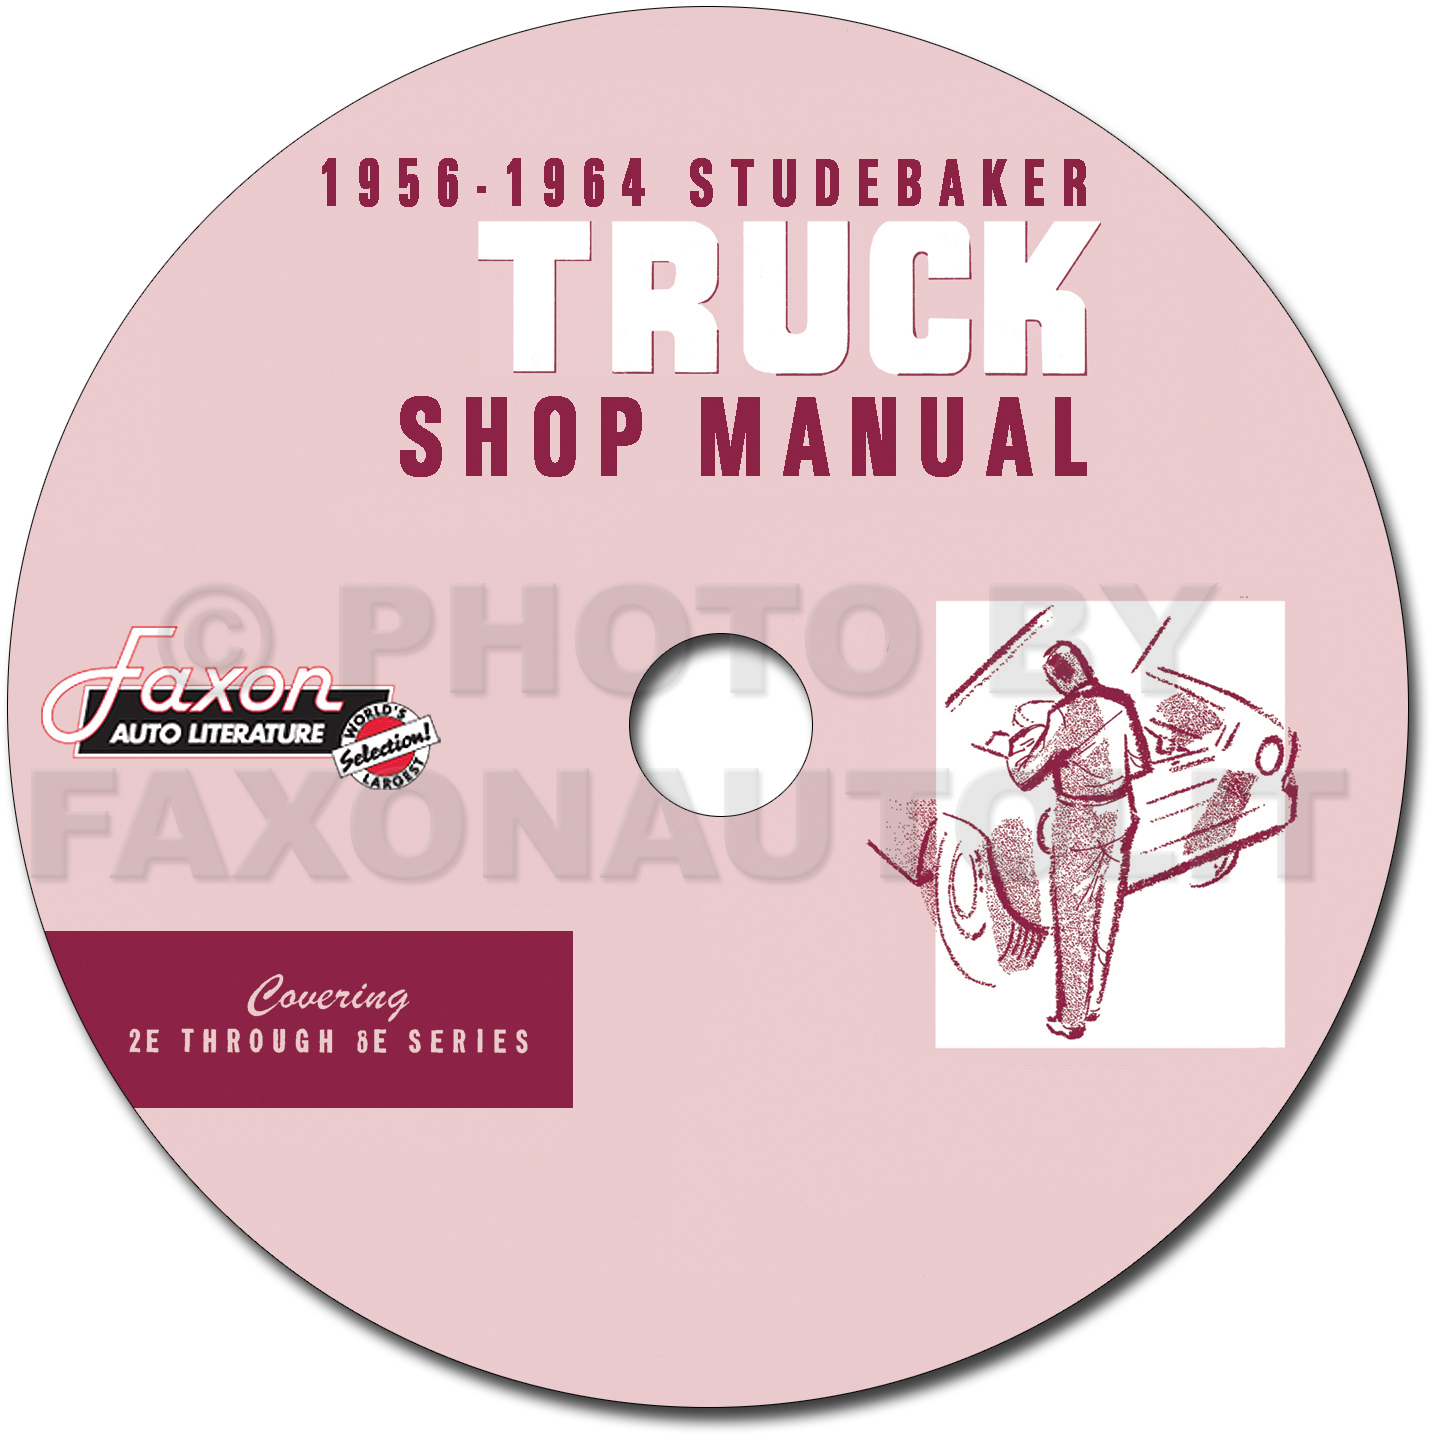 1956 1964 studebaker pickup truck repair shop manual on cd rom